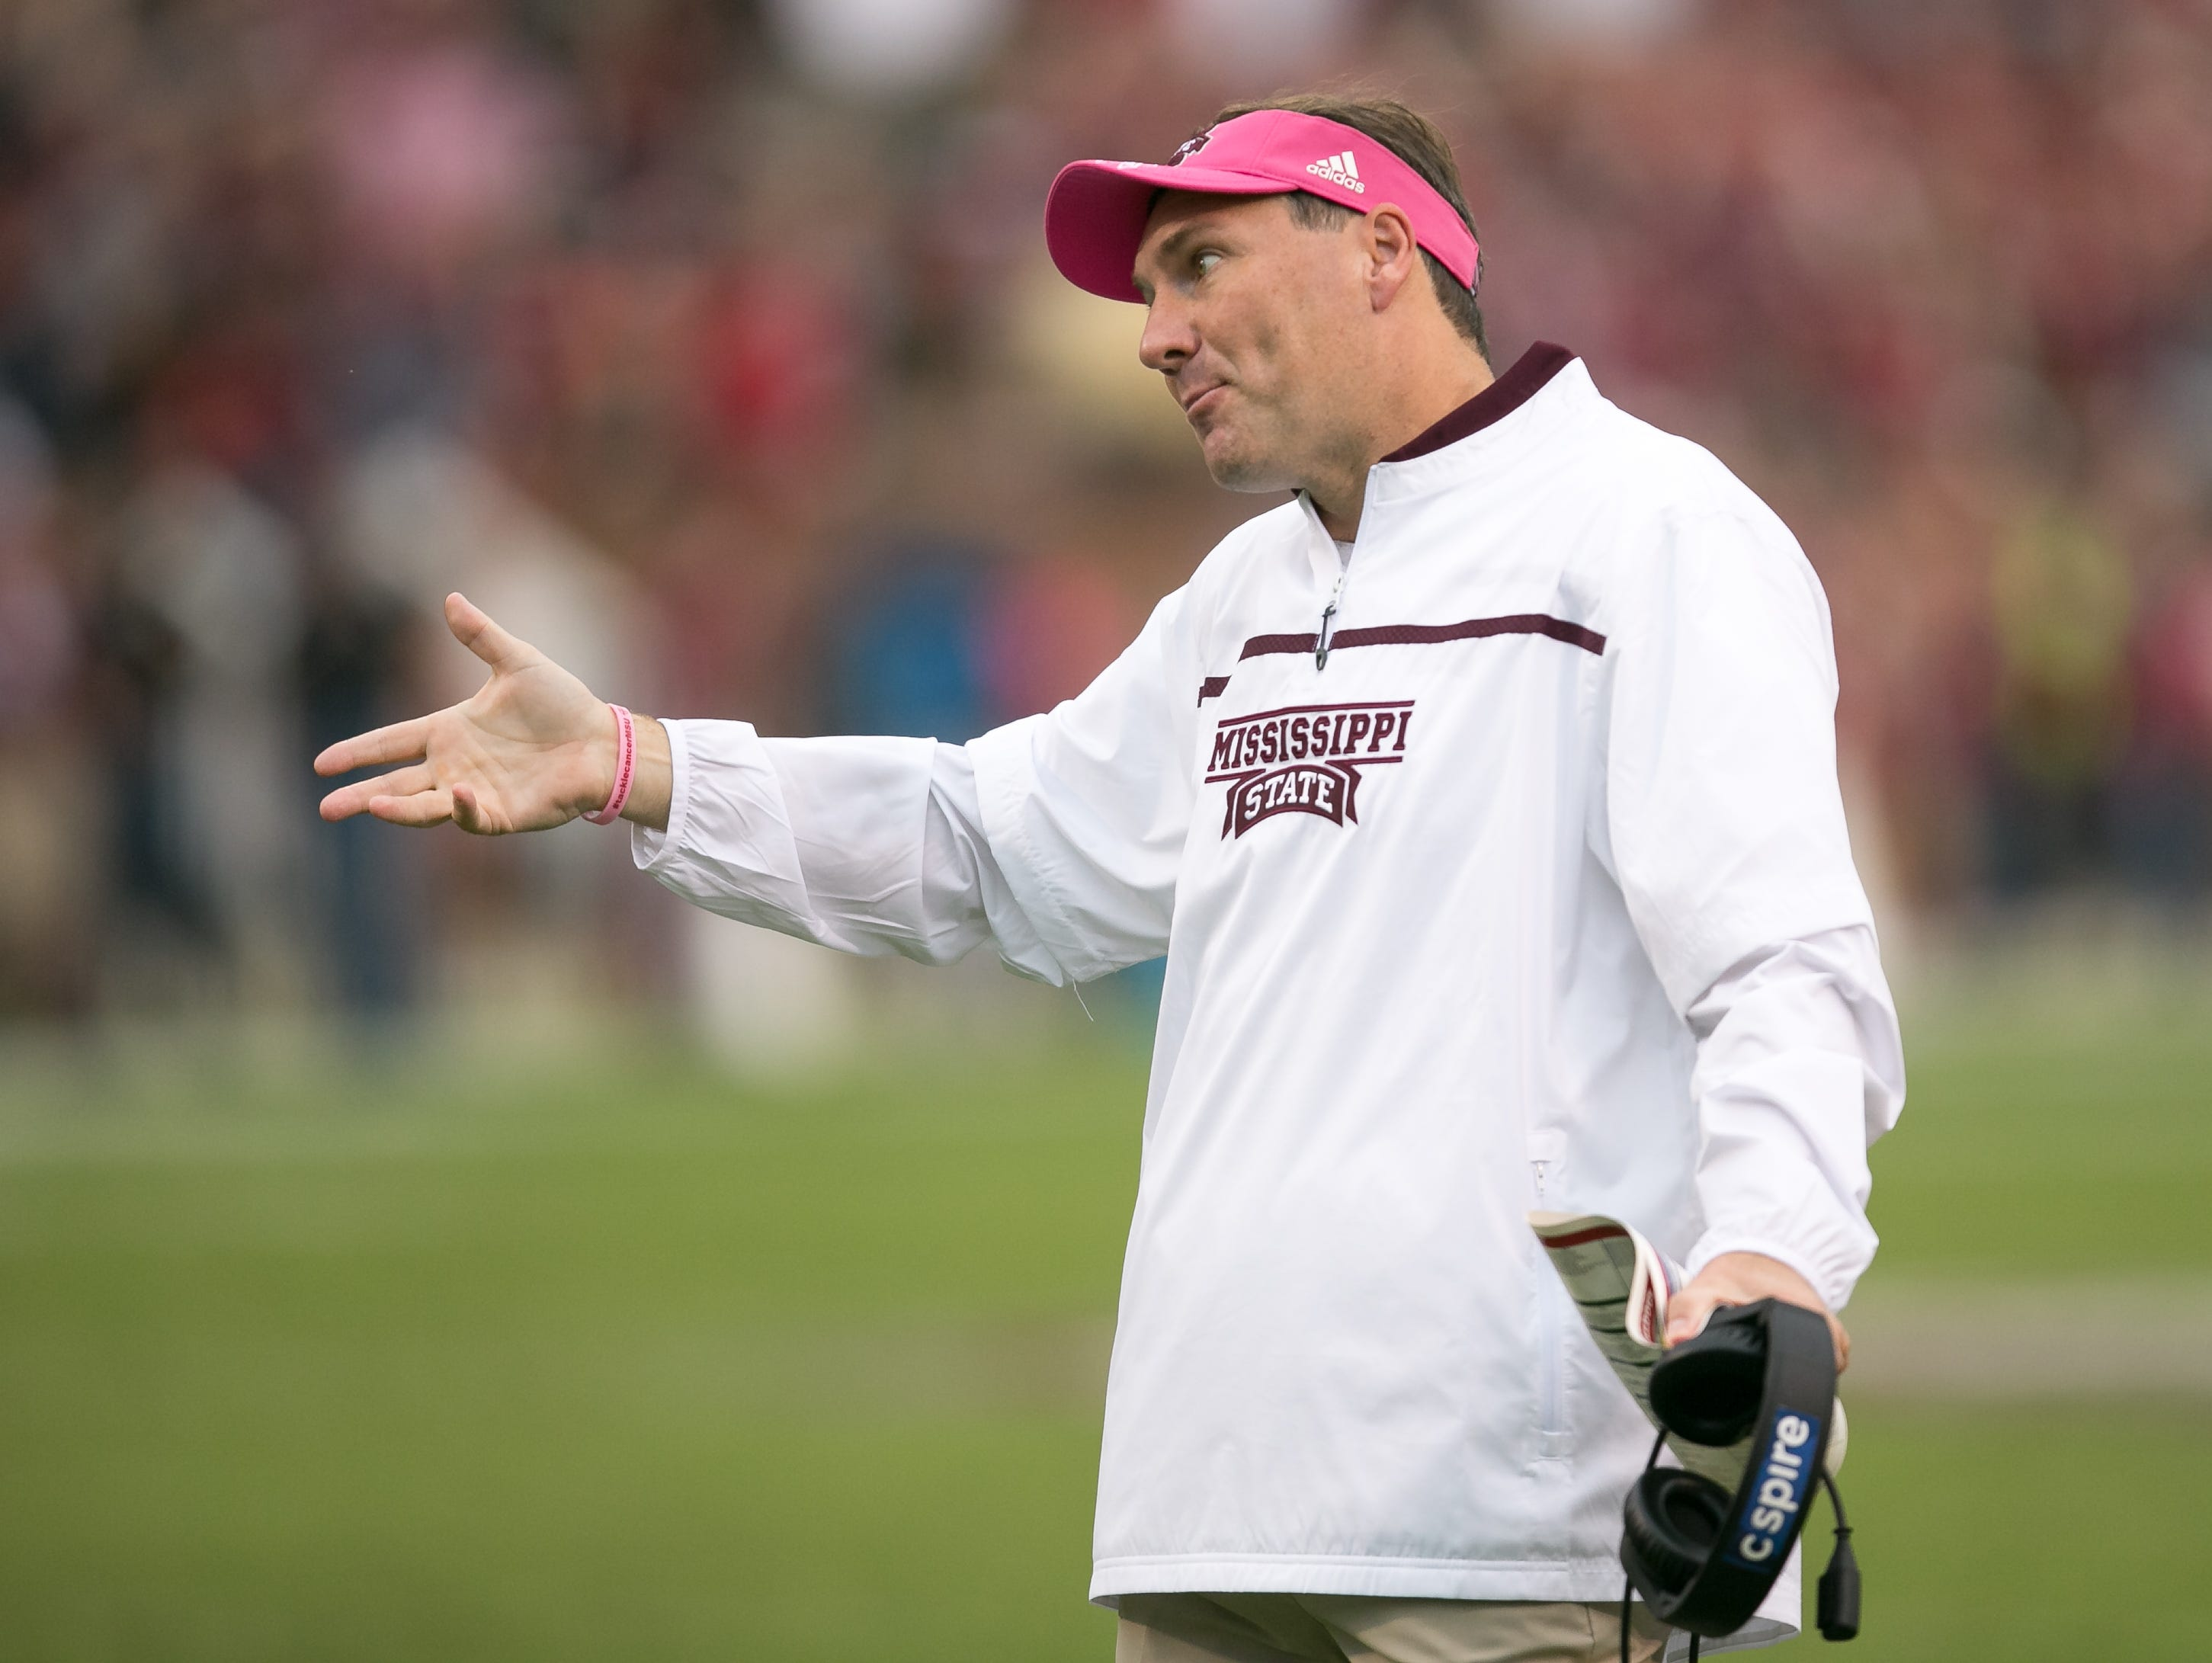 MSU head coach Dan Mullen talks to an official following an unsportsmanlike conduct penalty against the Bulldogs. Mississippi State played Troy in a college football game on Saturday, October 10, 2015 at Davis Wade Stadium in Starkville. Photo by Keith Warren (Mandatory Photo Credit)